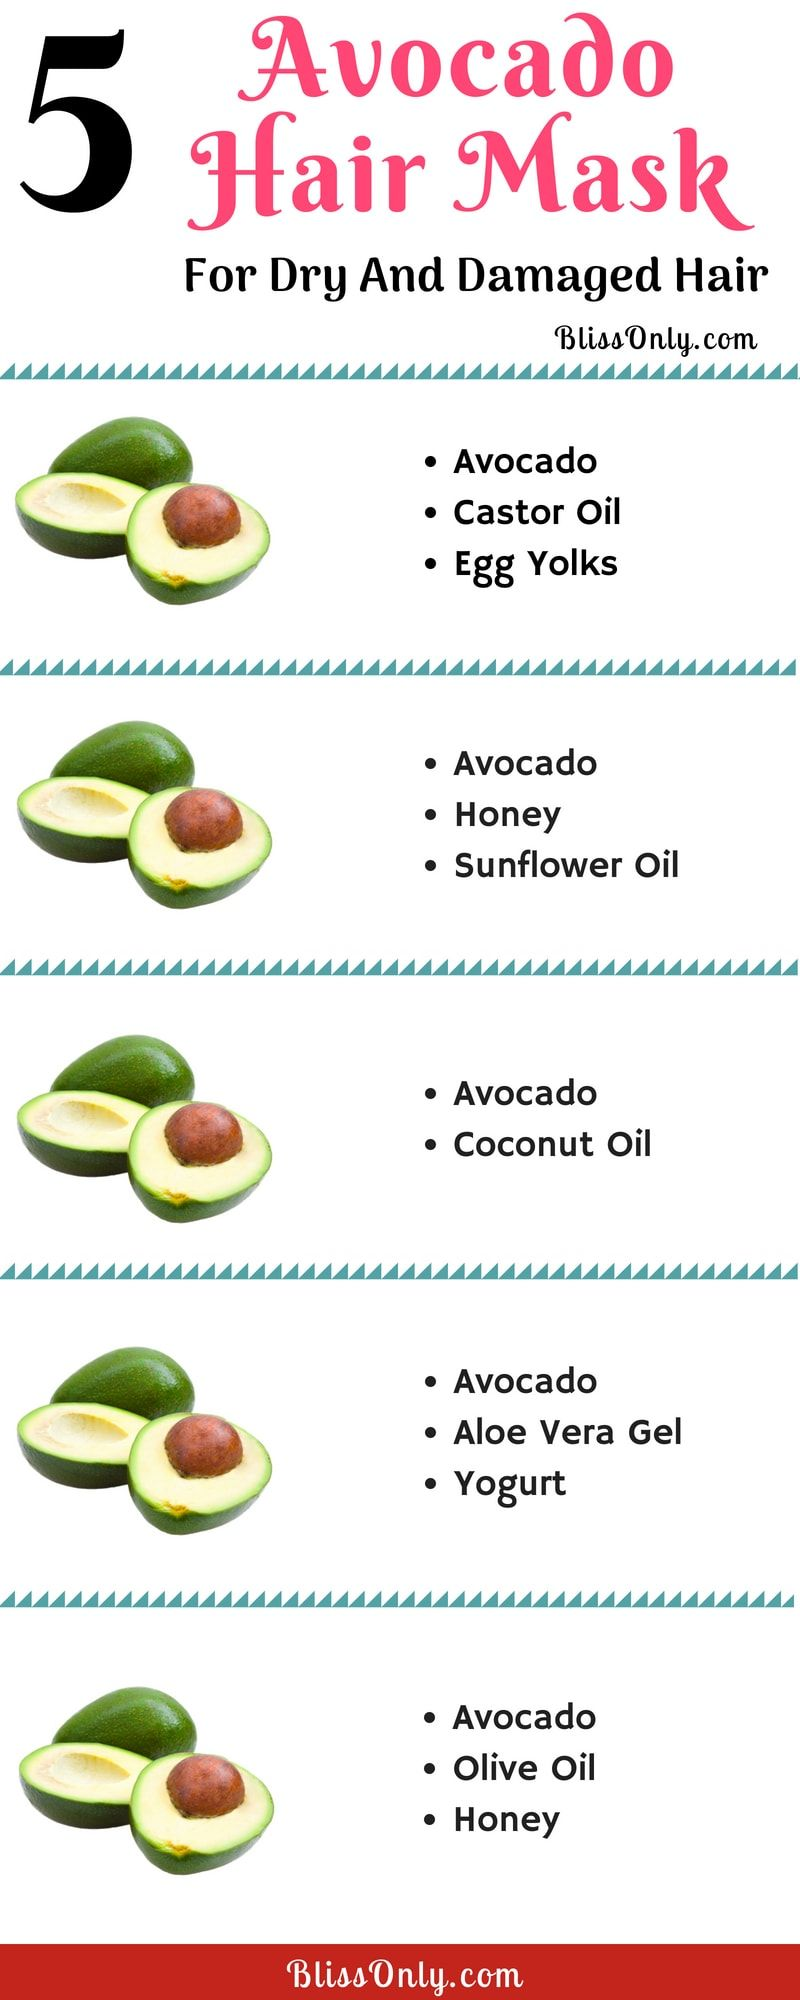 5 Avocado Hair Mask For Dry And Damaged Hair Avocado